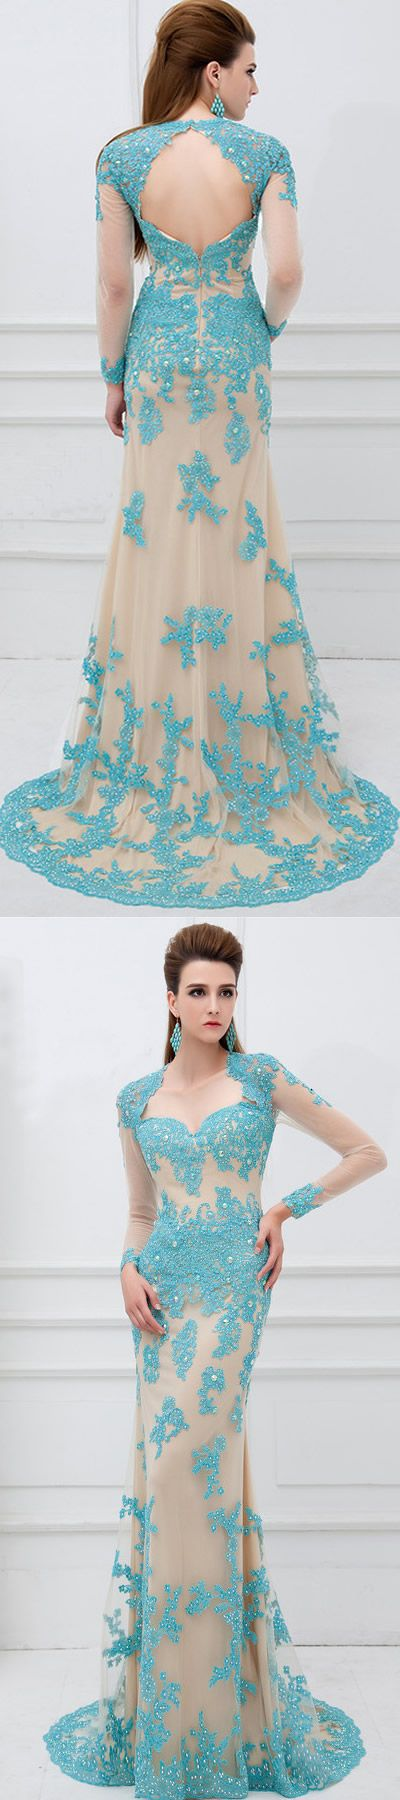 http://www.dressestime.com/ Turqoise Blue Small Train Muslim Mermaid Lace Beaded Formal Long Sleeve Prom Dress Gown,lace prom dress,beading Crystal Mermaid Lace Formal Evening Dresses With Long Sleeves